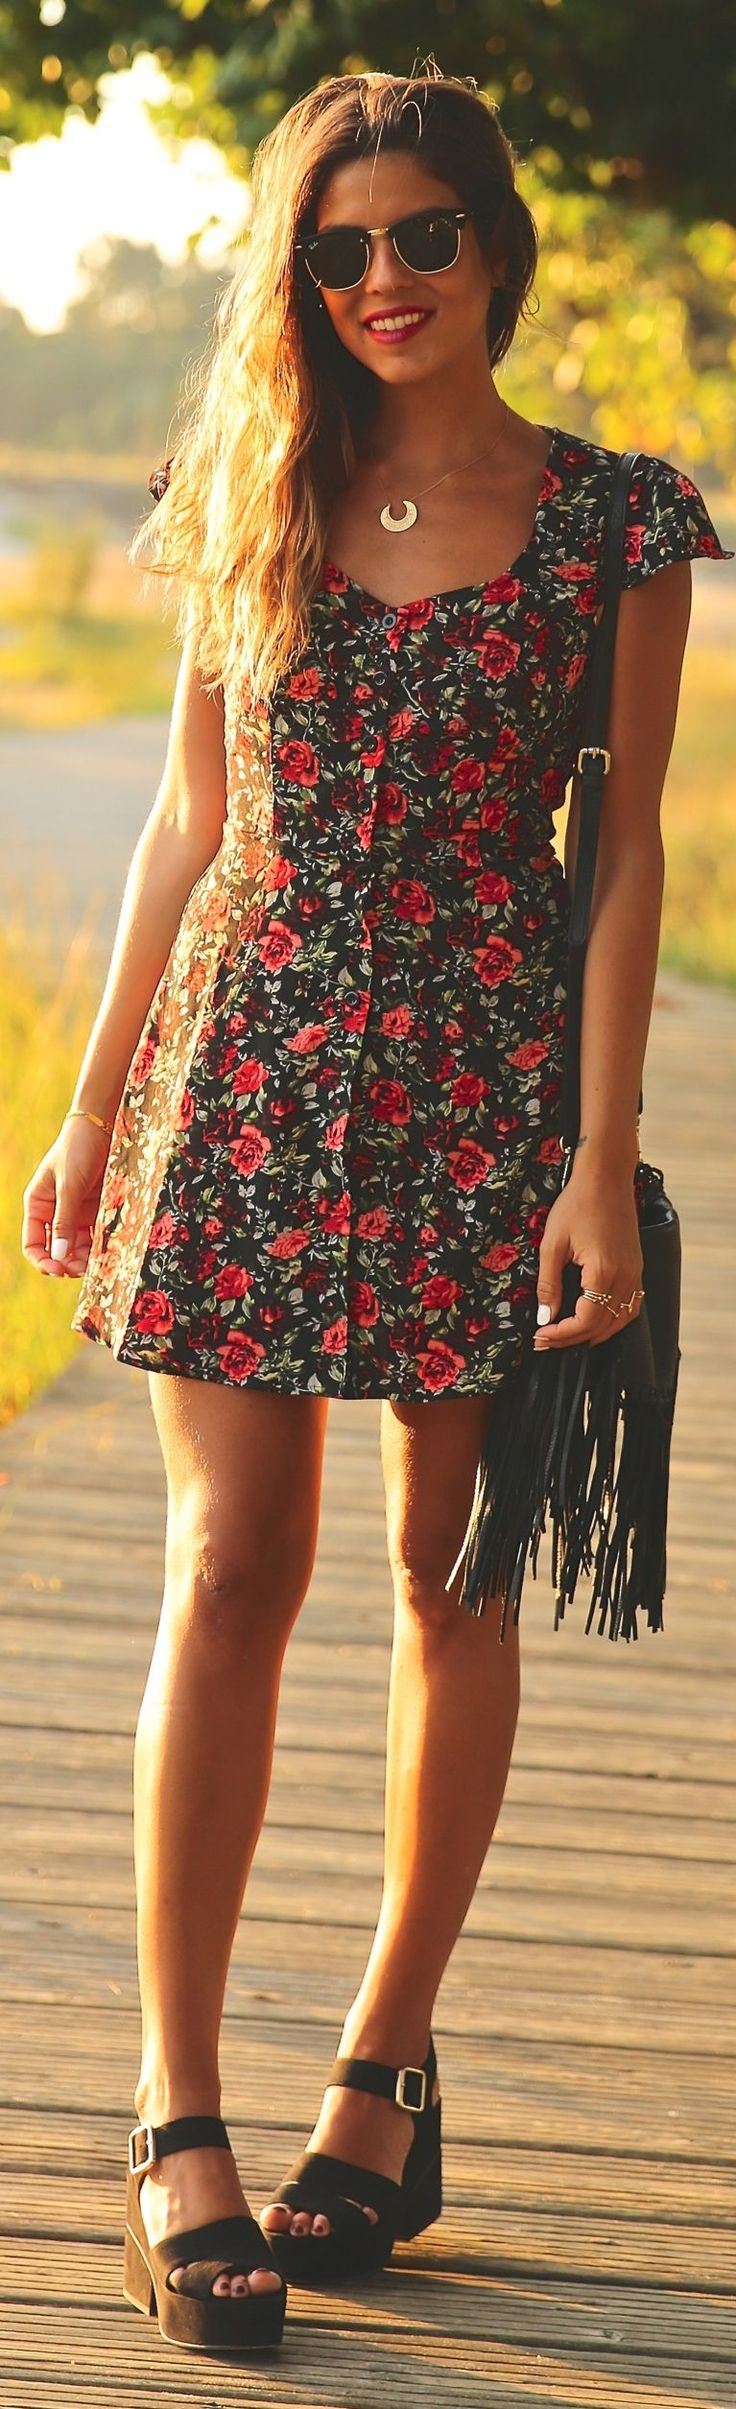 See sun shining through dress - Summer Trends Floral Dress Sandals